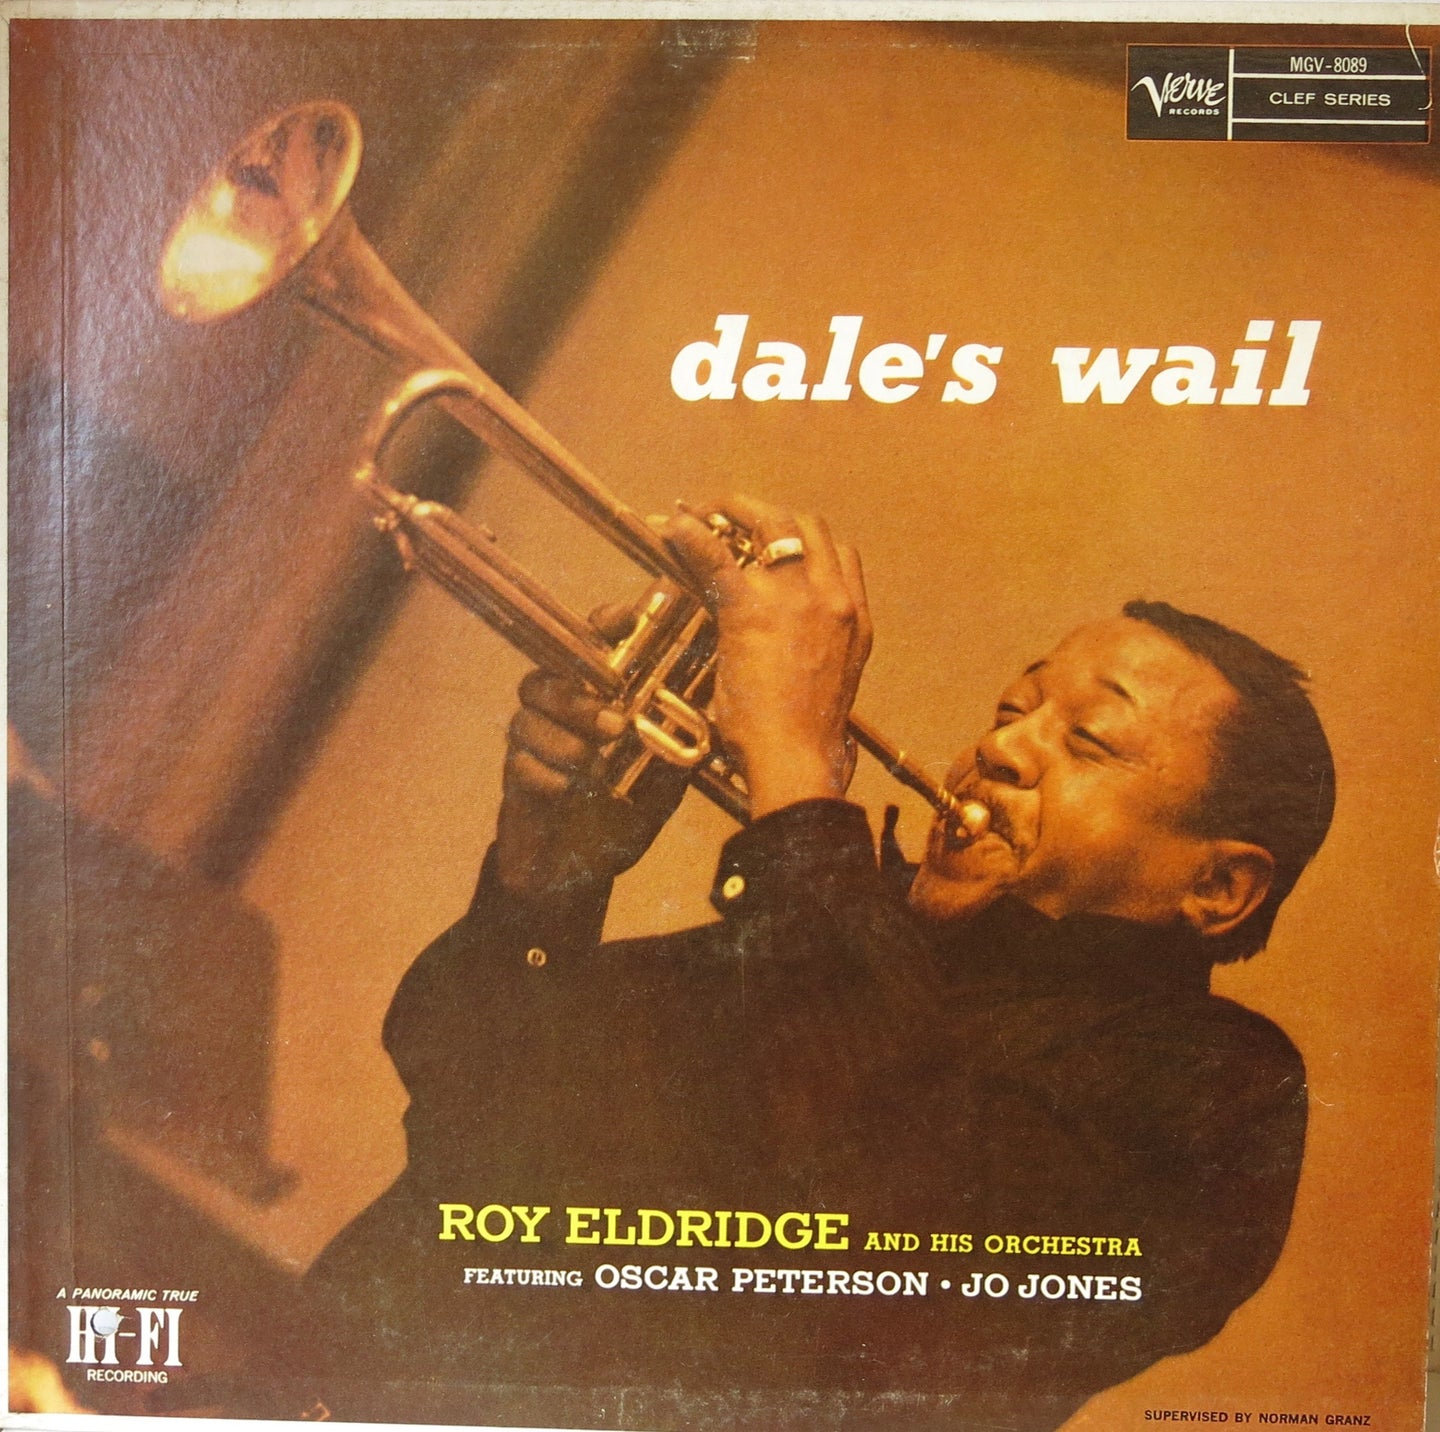 Roy Eldridge And His Orchestra Featuring Oscar Peterson & Jo Jones ‎– Dale's Wail - Verve